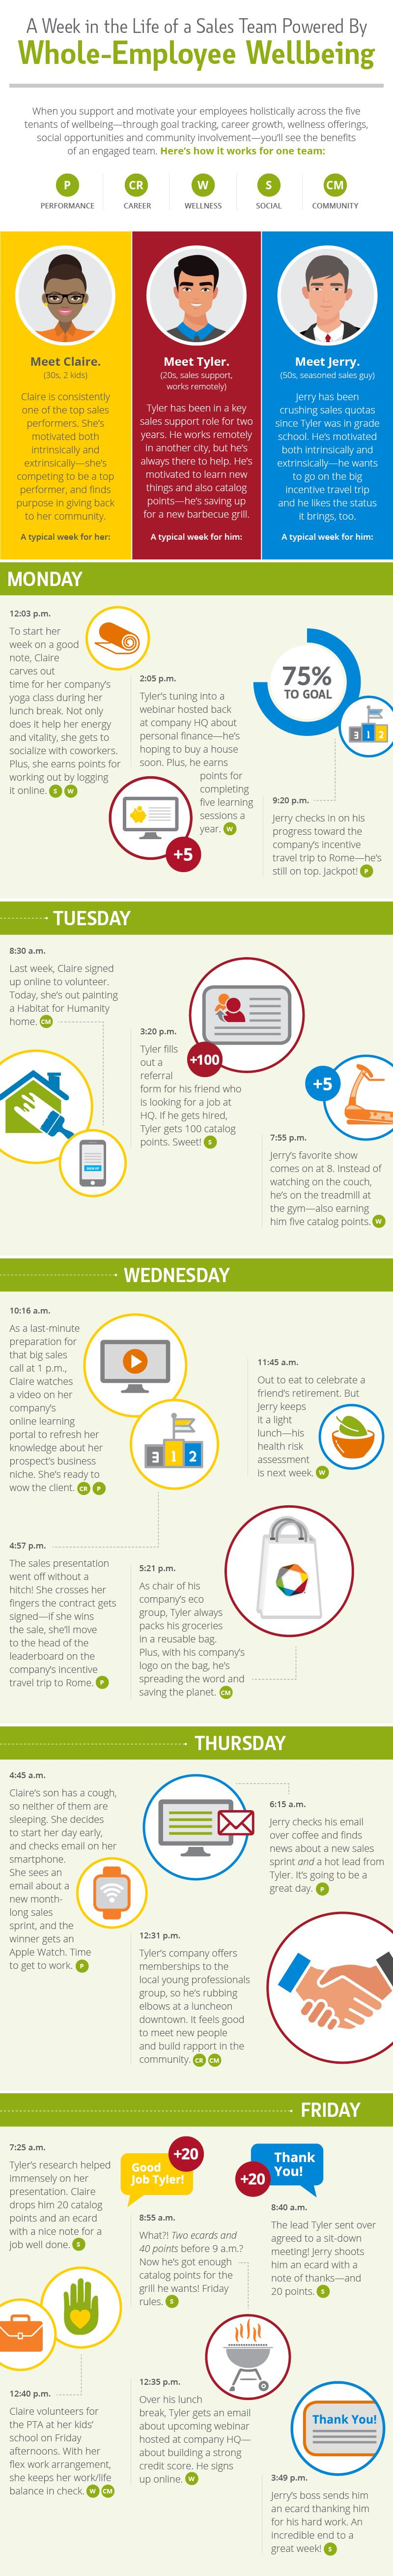 A Week in the Life of a Sales Team Powered by Whole-Employee Wellbeing Infographic